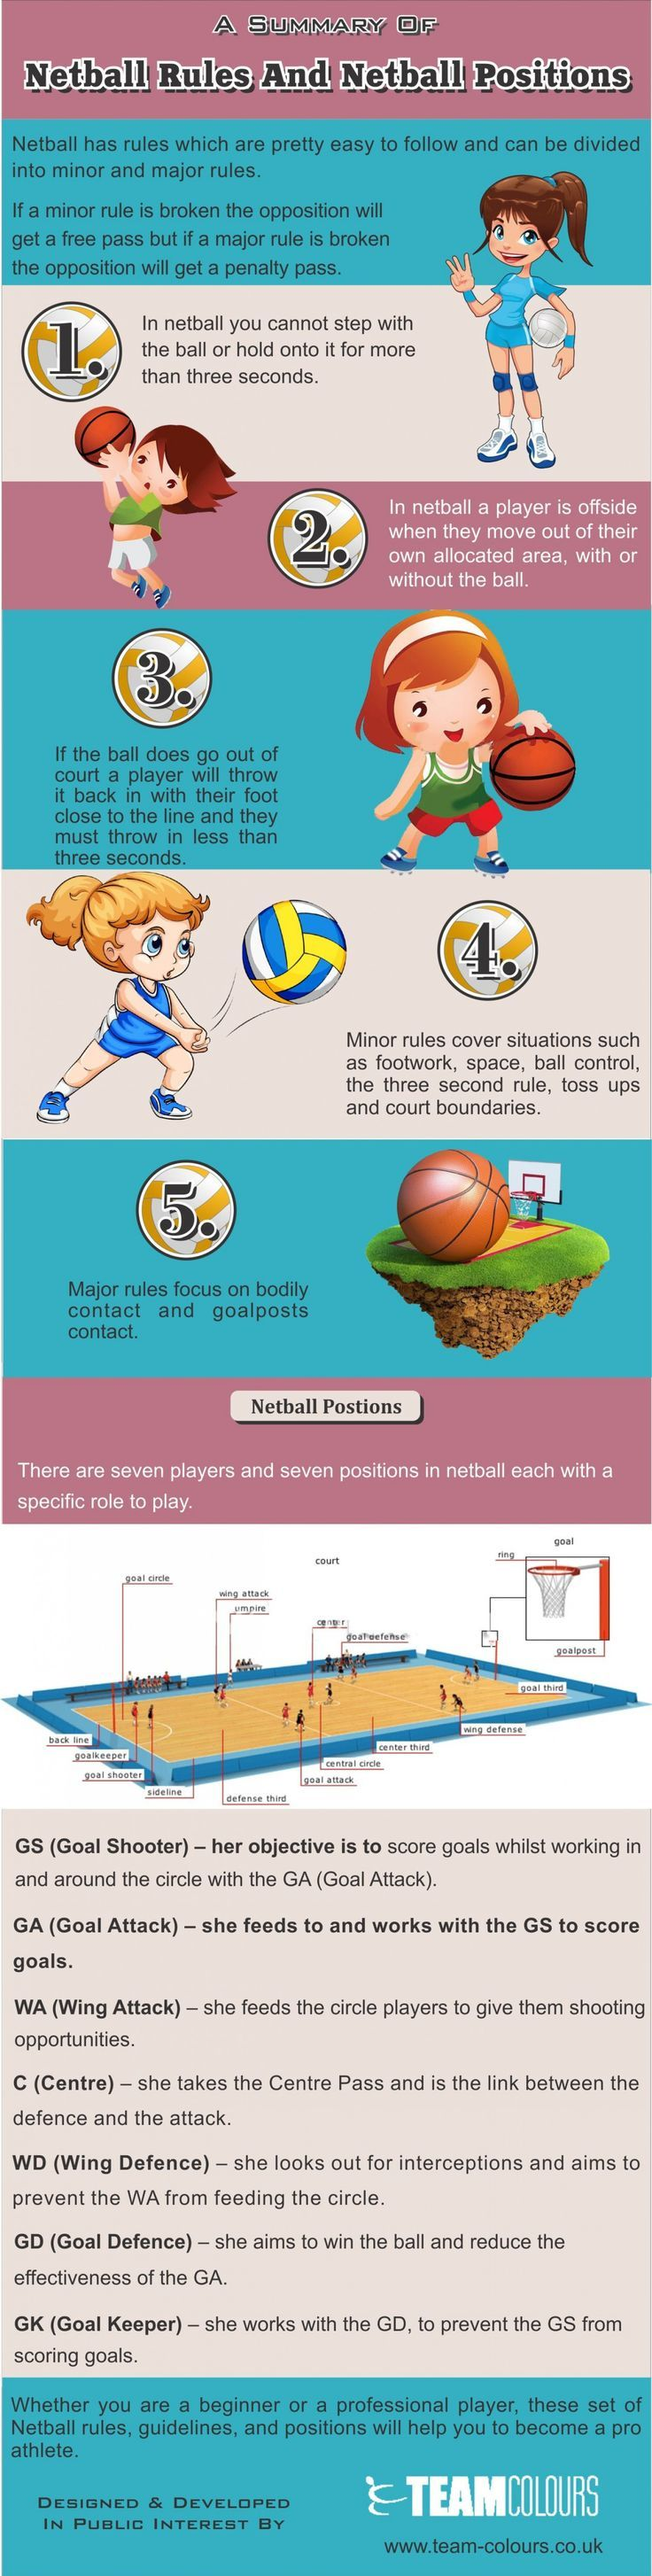 A Summary Of Netball Rules And Netball Positions